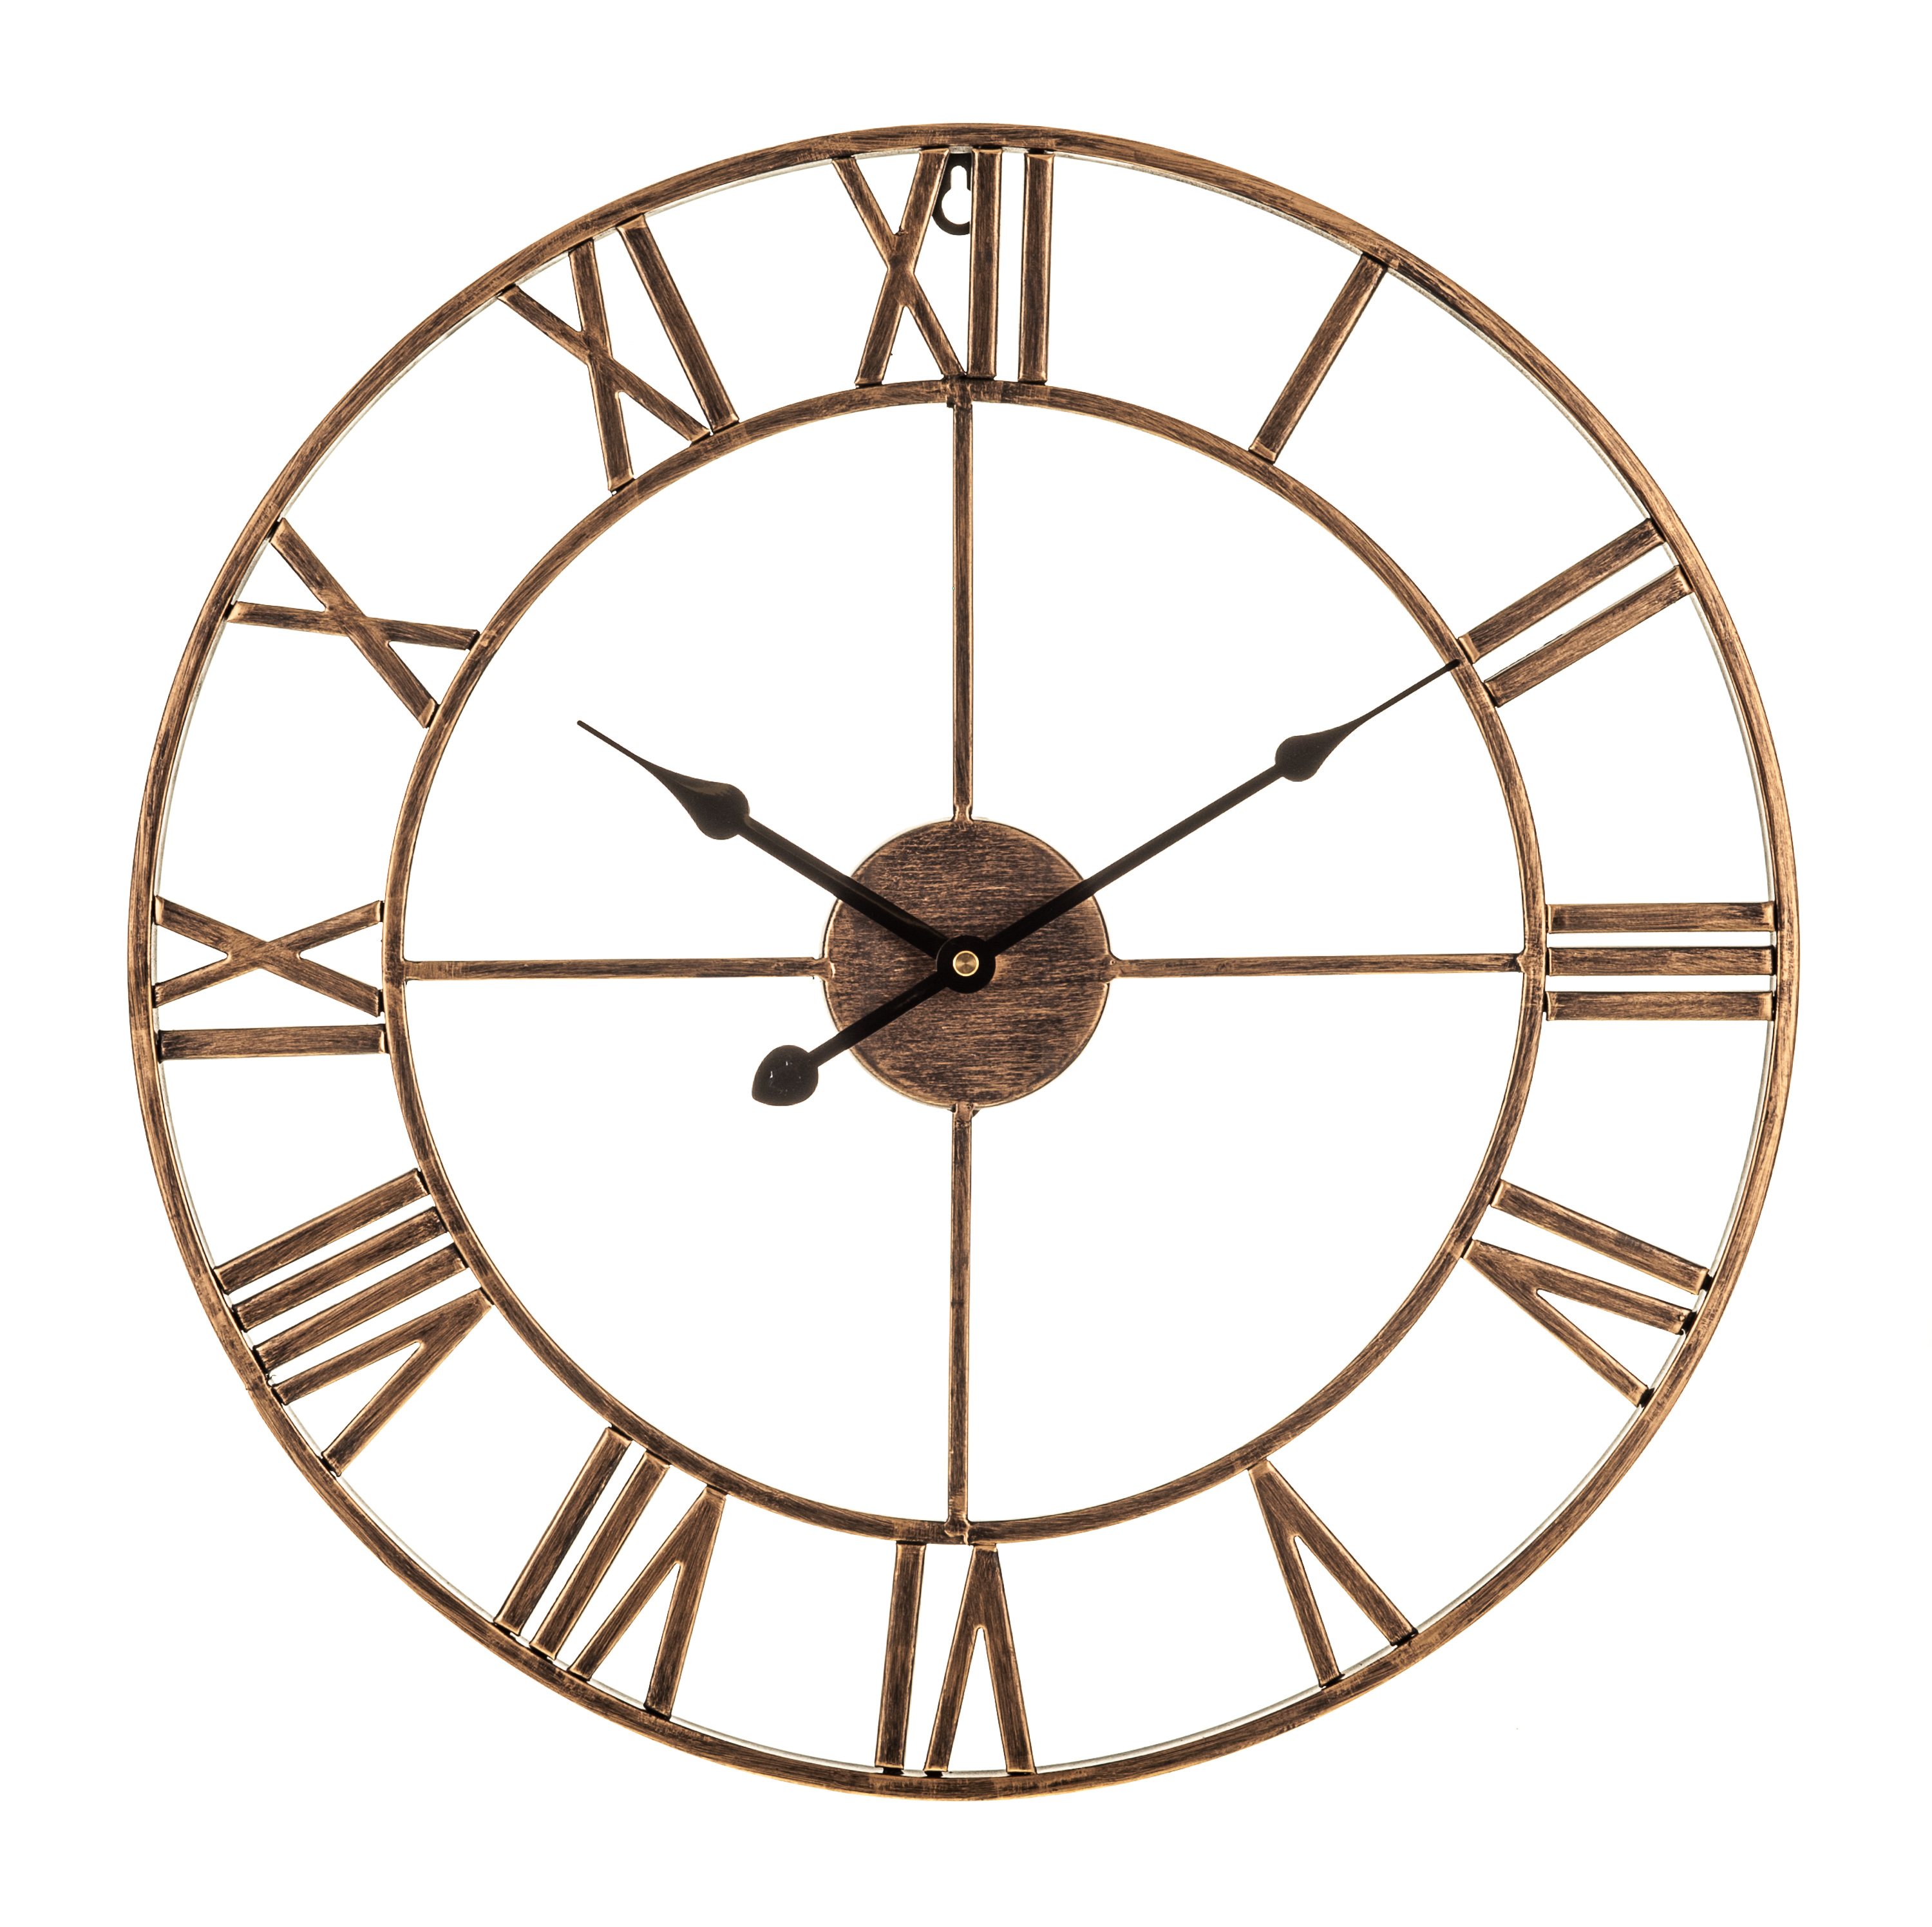 100 traditional wall clock designer clock to decorate your